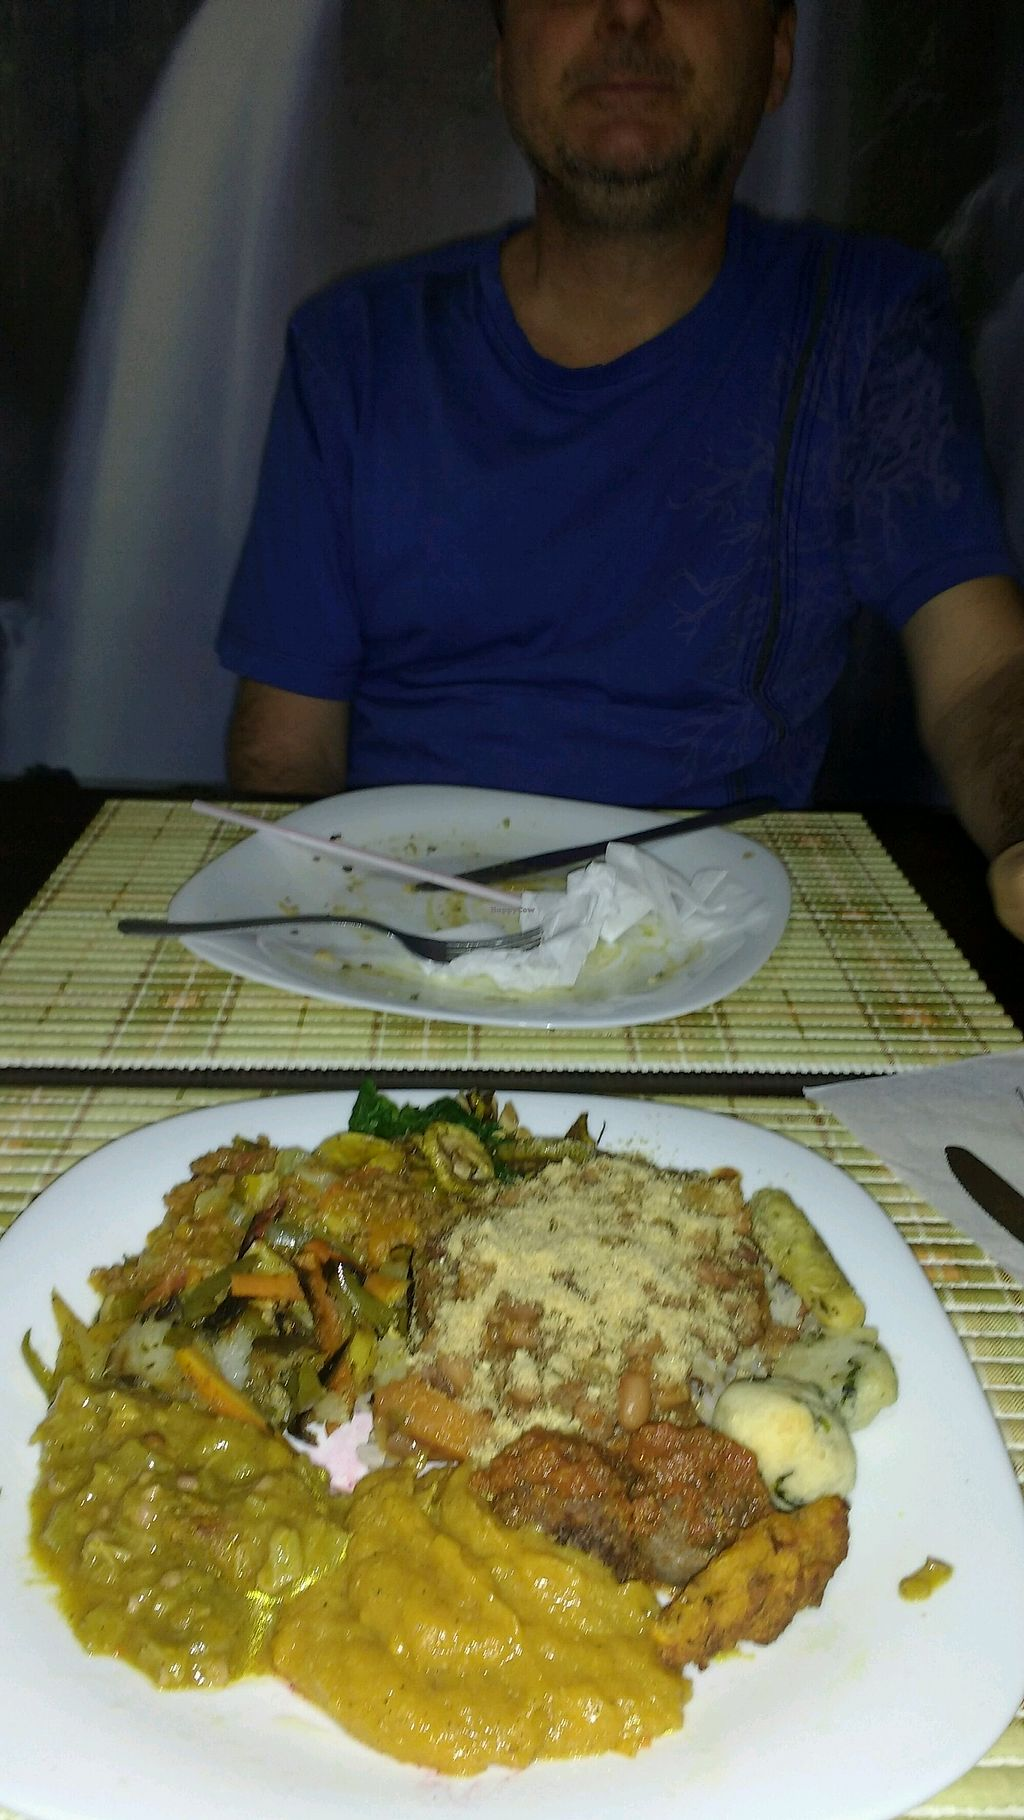 """Photo of Vegethare Restaurante Vegetariano  by <a href=""""/members/profile/JulioParra"""">JulioParra</a> <br/>Pratinho <br/> January 9, 2018  - <a href='/contact/abuse/image/81836/344681'>Report</a>"""